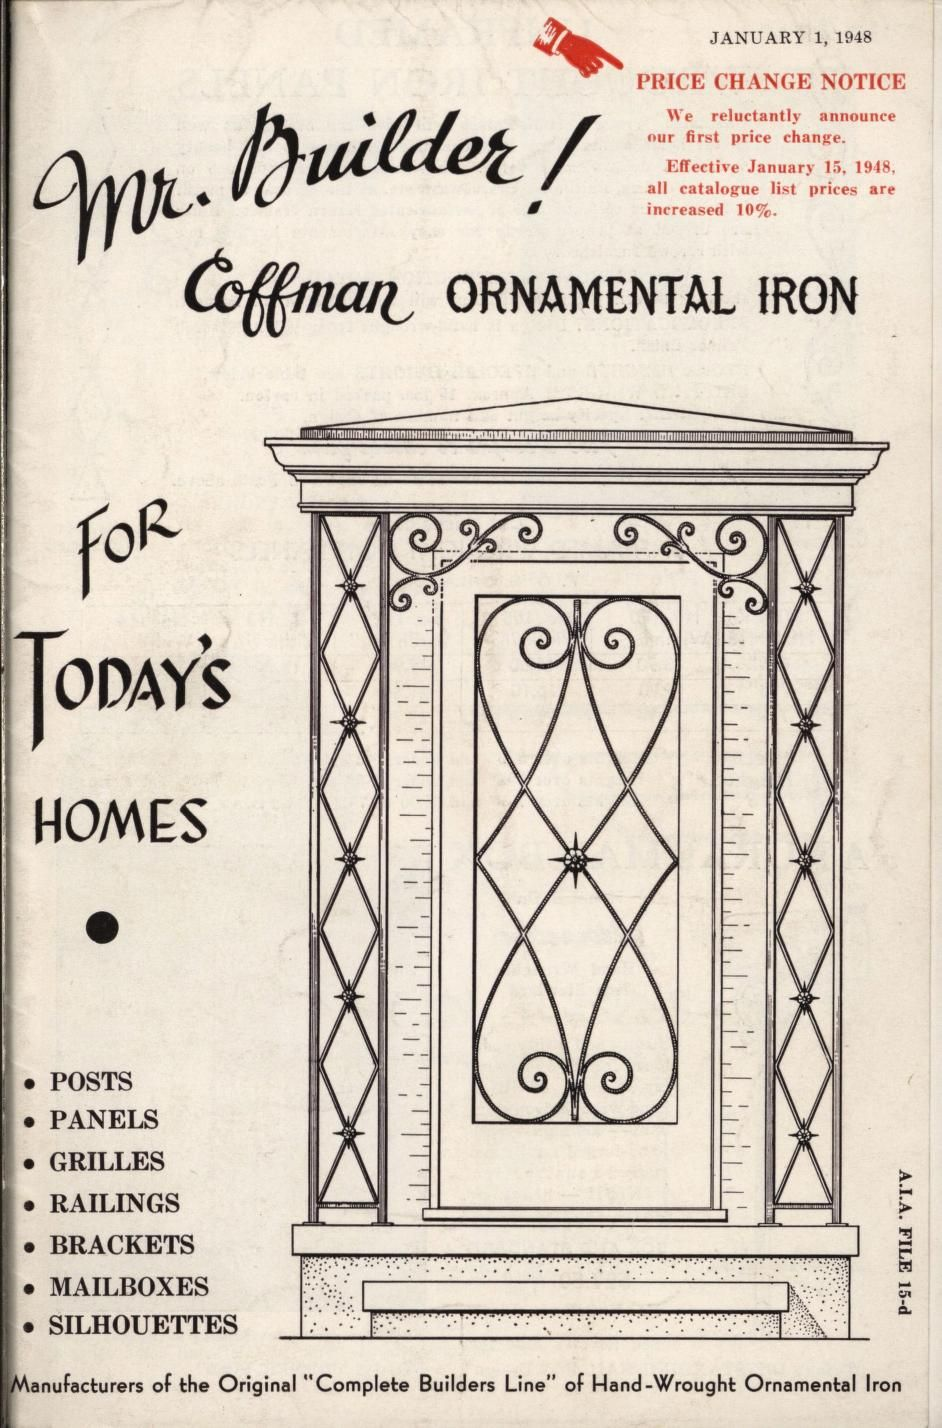 Mr. builder! Coffman ornamental iron for today'...